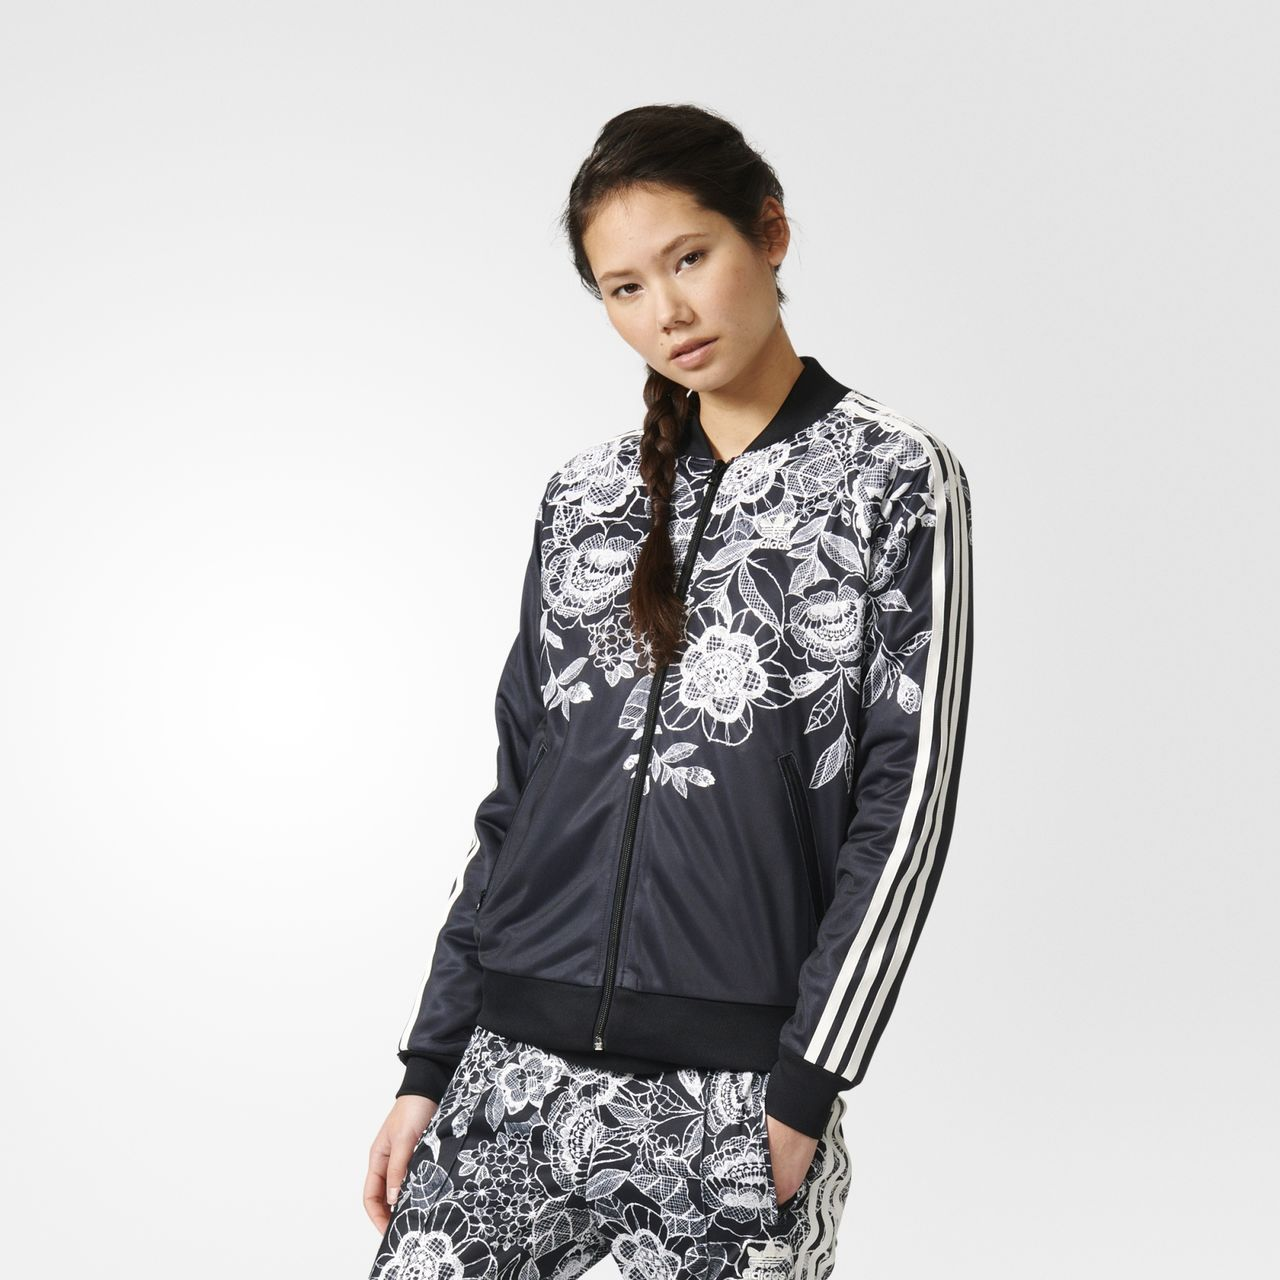 Sporty feminine style blends with a nature-inspired floral print in this women's track jacket. A collaboration with Brazilian label The FARM Company, this jacket combines the best of both worlds. A lace-like pattern of flowers covers you from shoulders to midriff, front and back. The white petals and tonal leaves on black have a vintage hand-stitched feeling, while 3-Stripes riding the sleeves makes it unmistakably adidas.